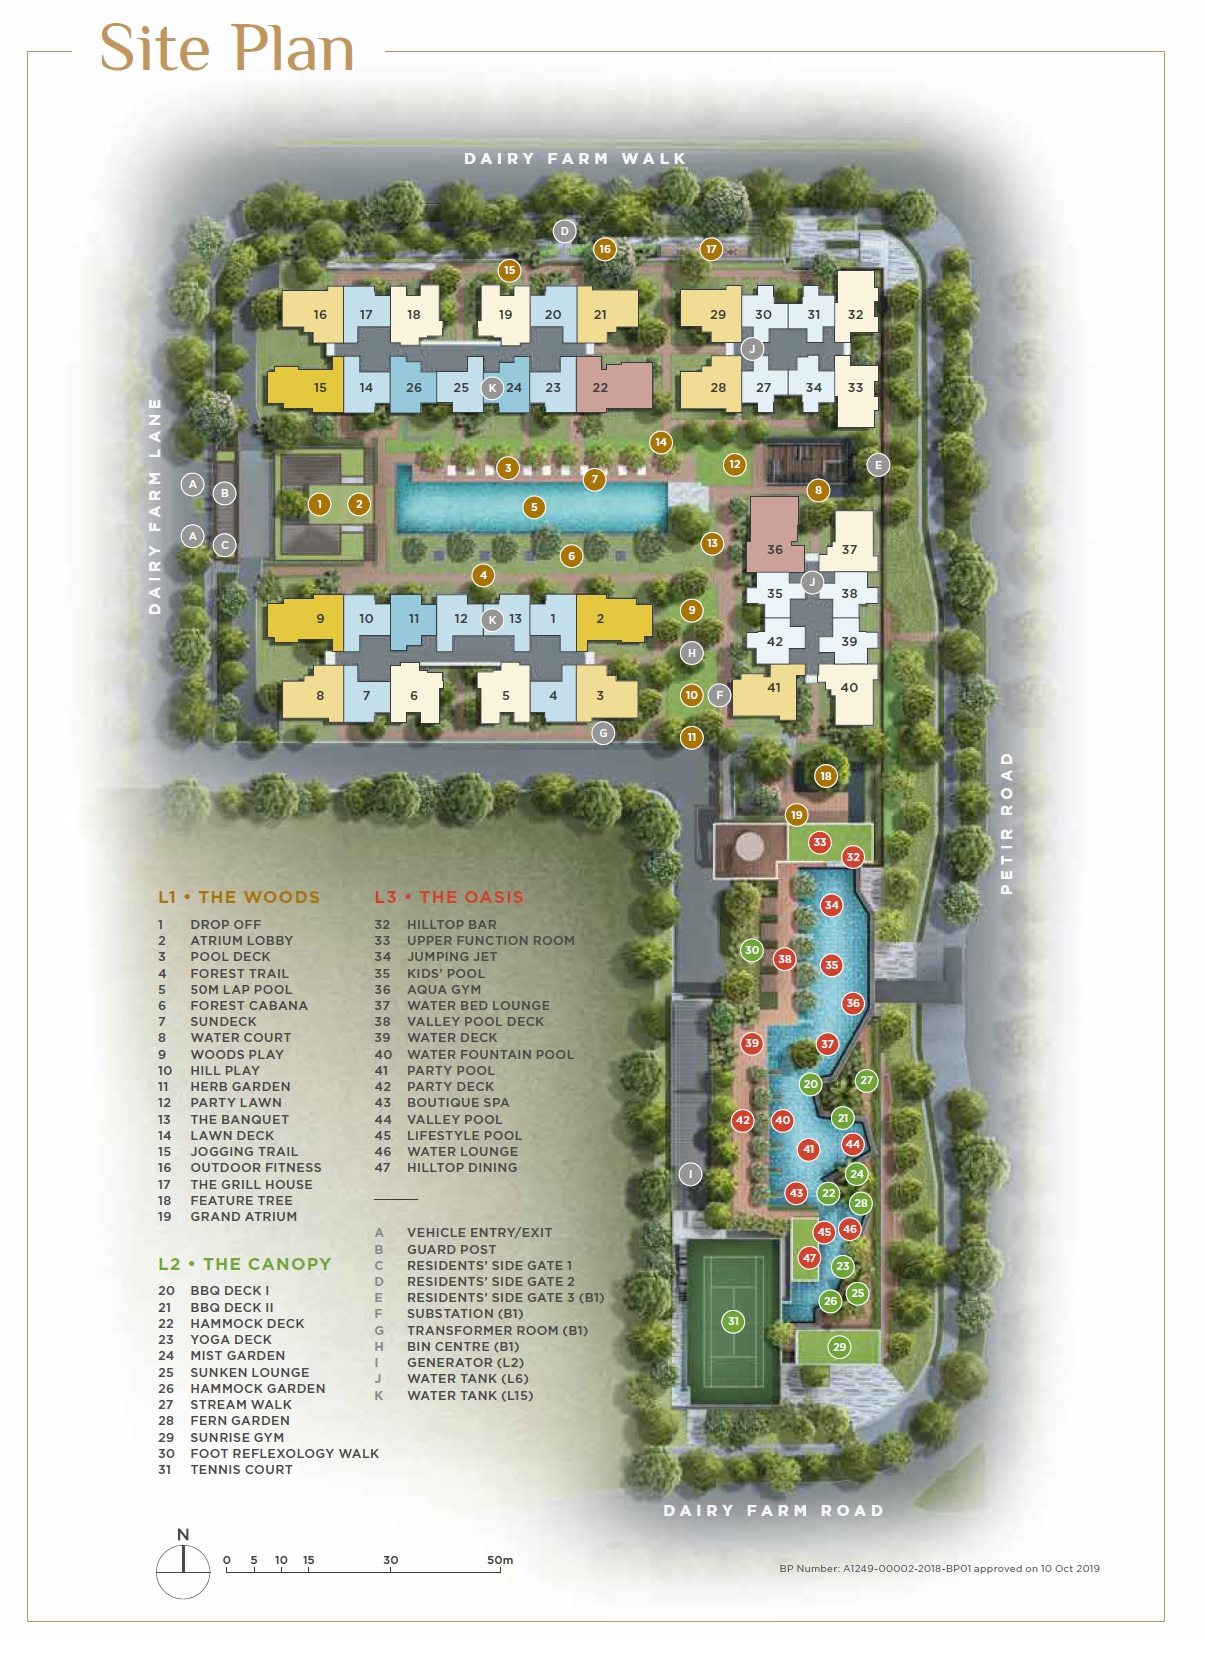 Dairy Farm Residences (D23) site plan